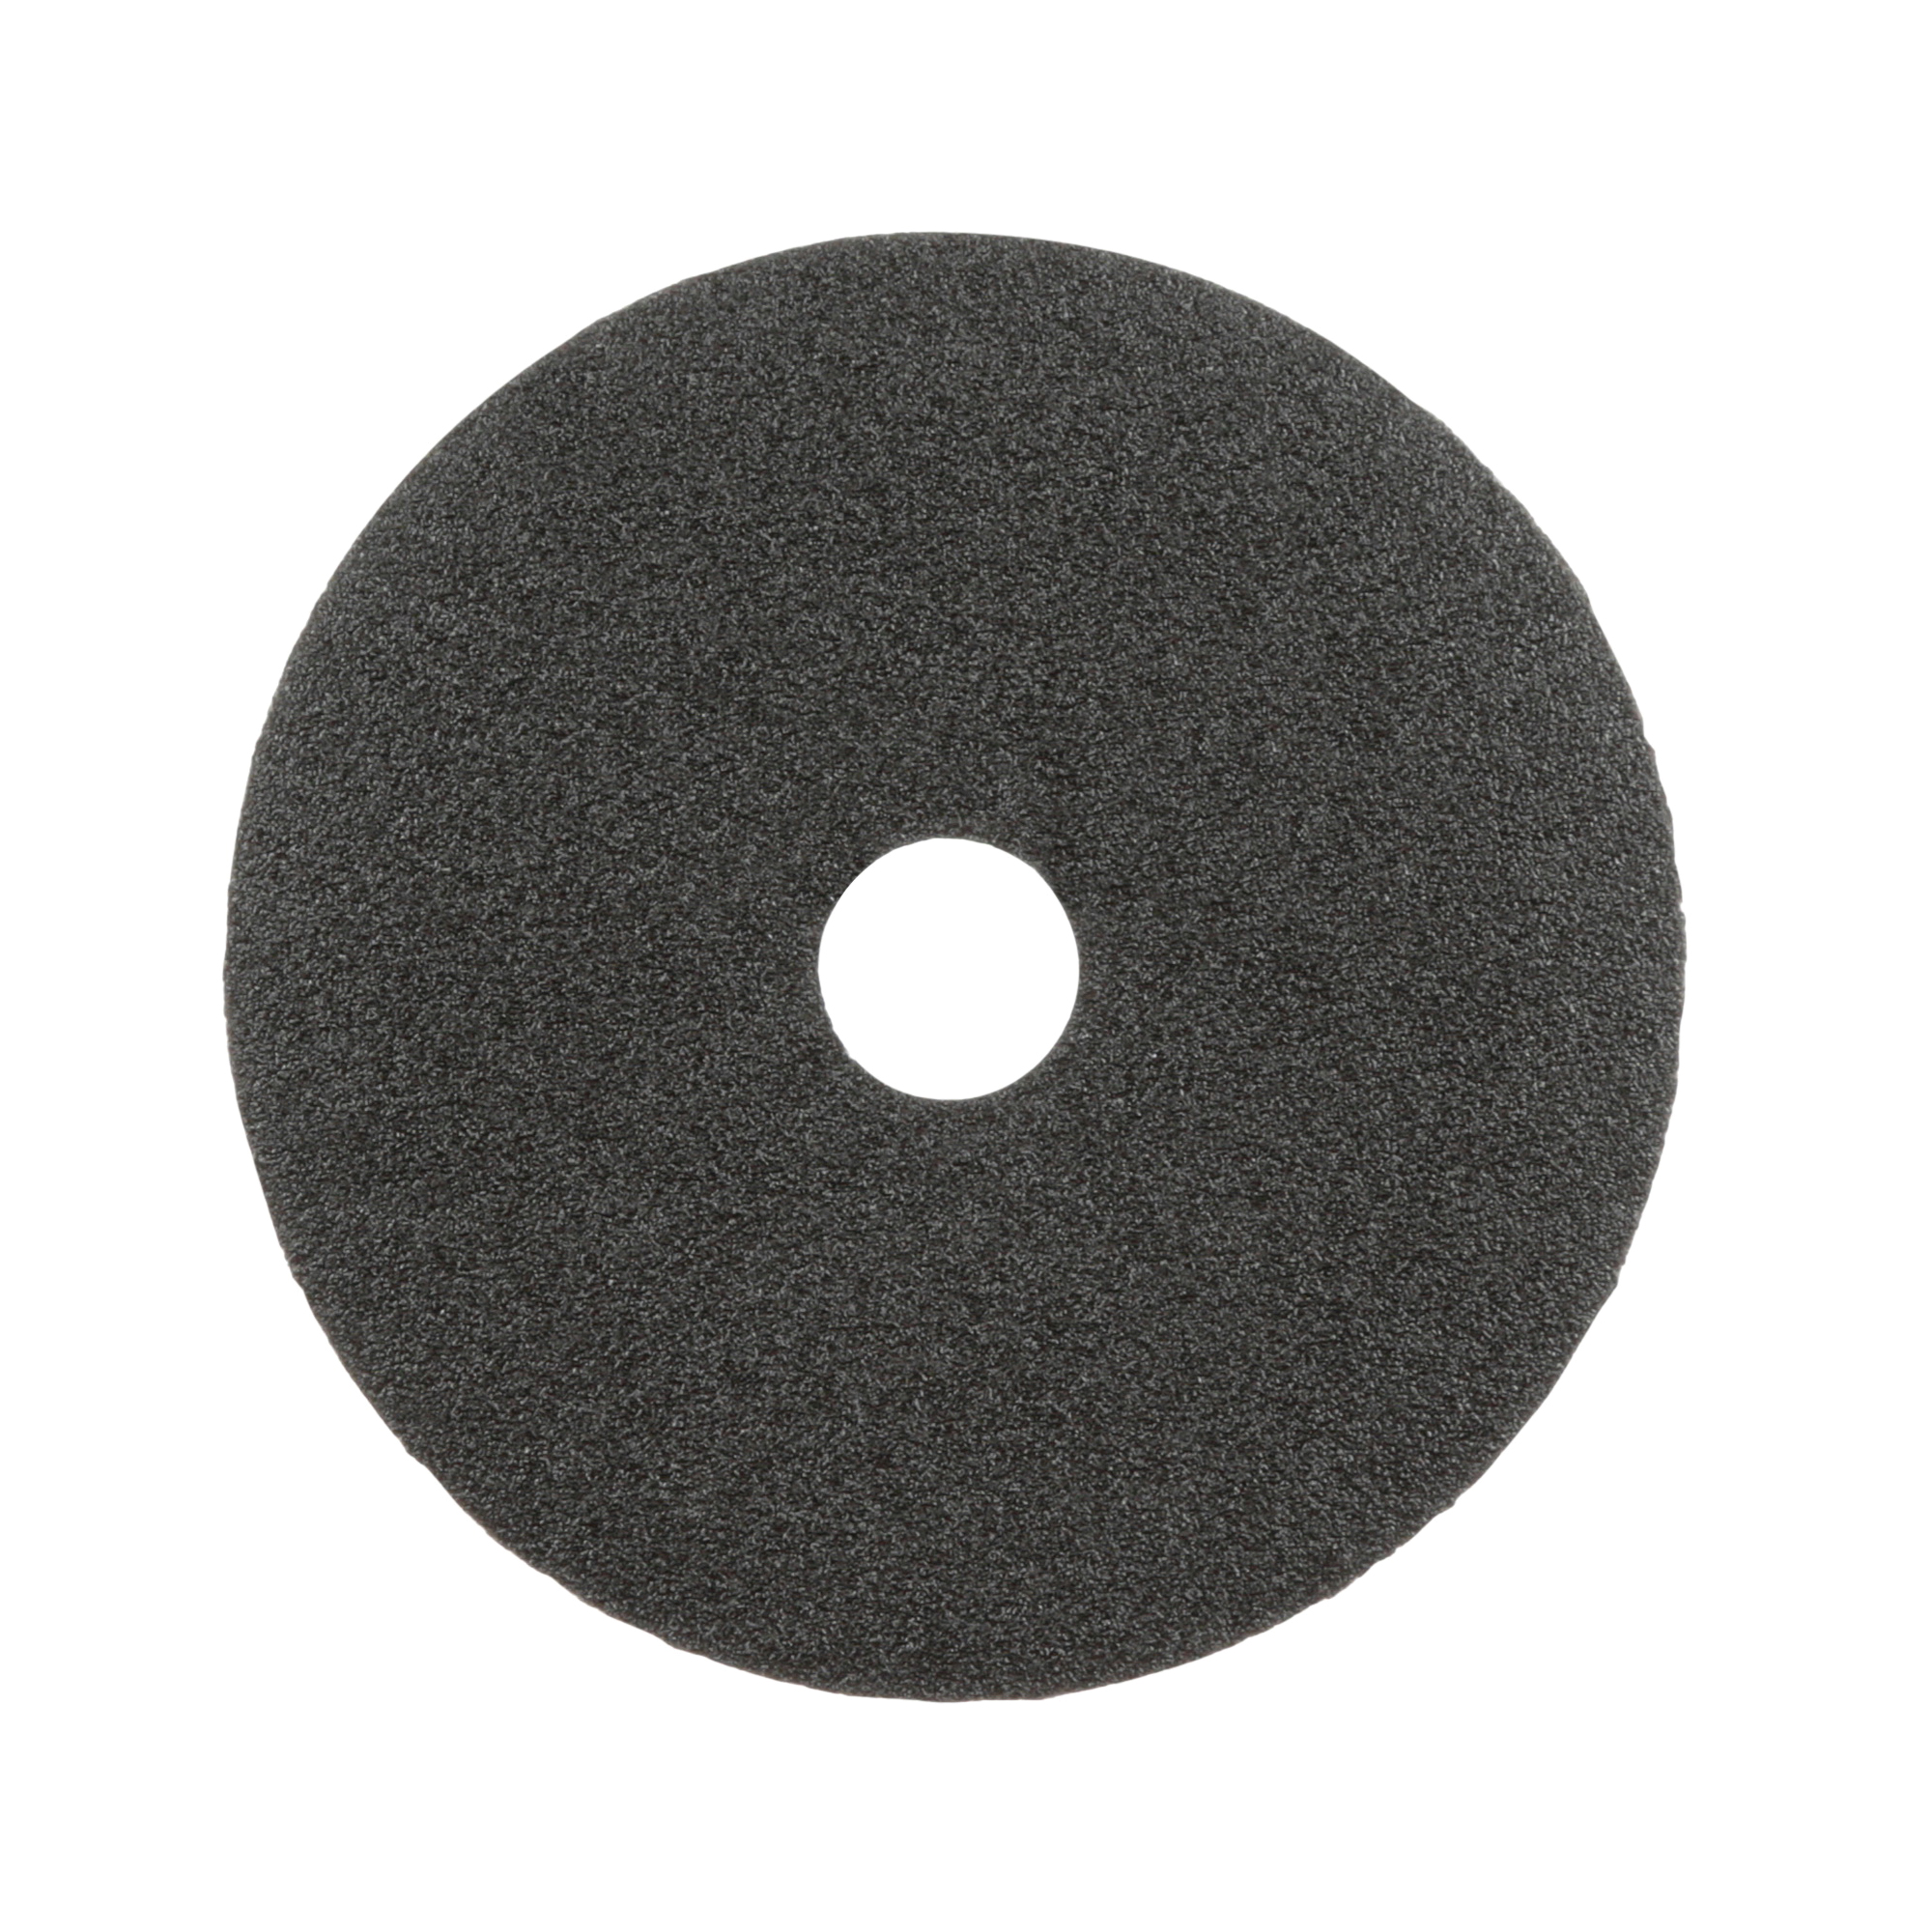 3M™ 051111-50423 501C Close Coated Closed Coated Abrasive Disc, 5 in Dia Disc, 7/8 in Center Hole, 100 Grit, Fine Grade, Zirconia Alumina Abrasive, Arbor Attachment